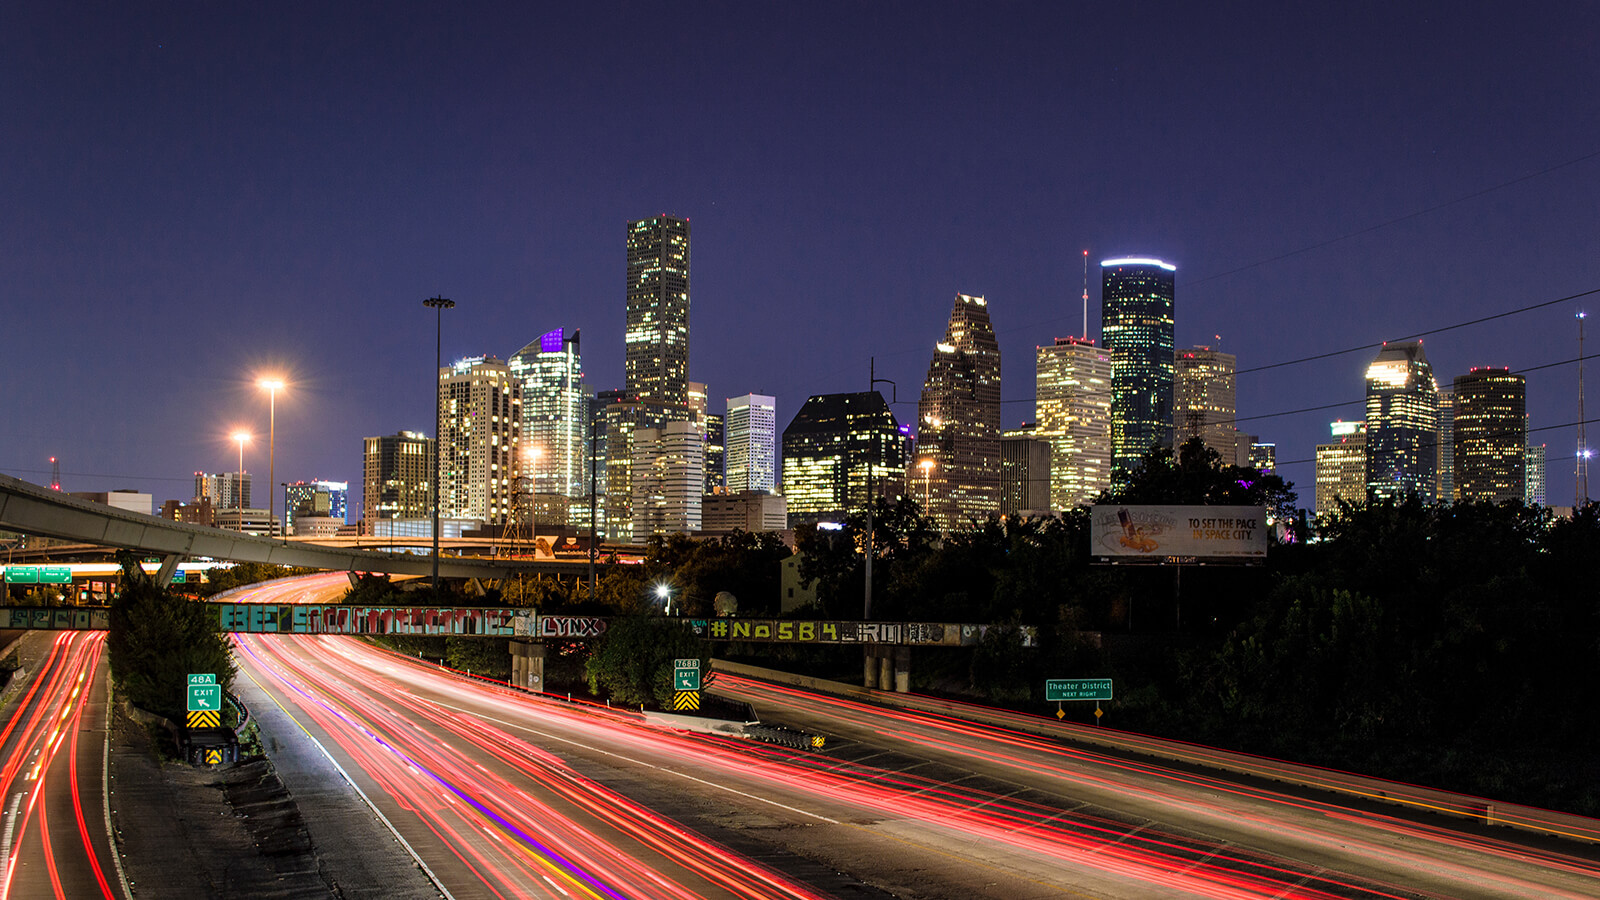 Long exposure of the Houston, Texas skyline at night